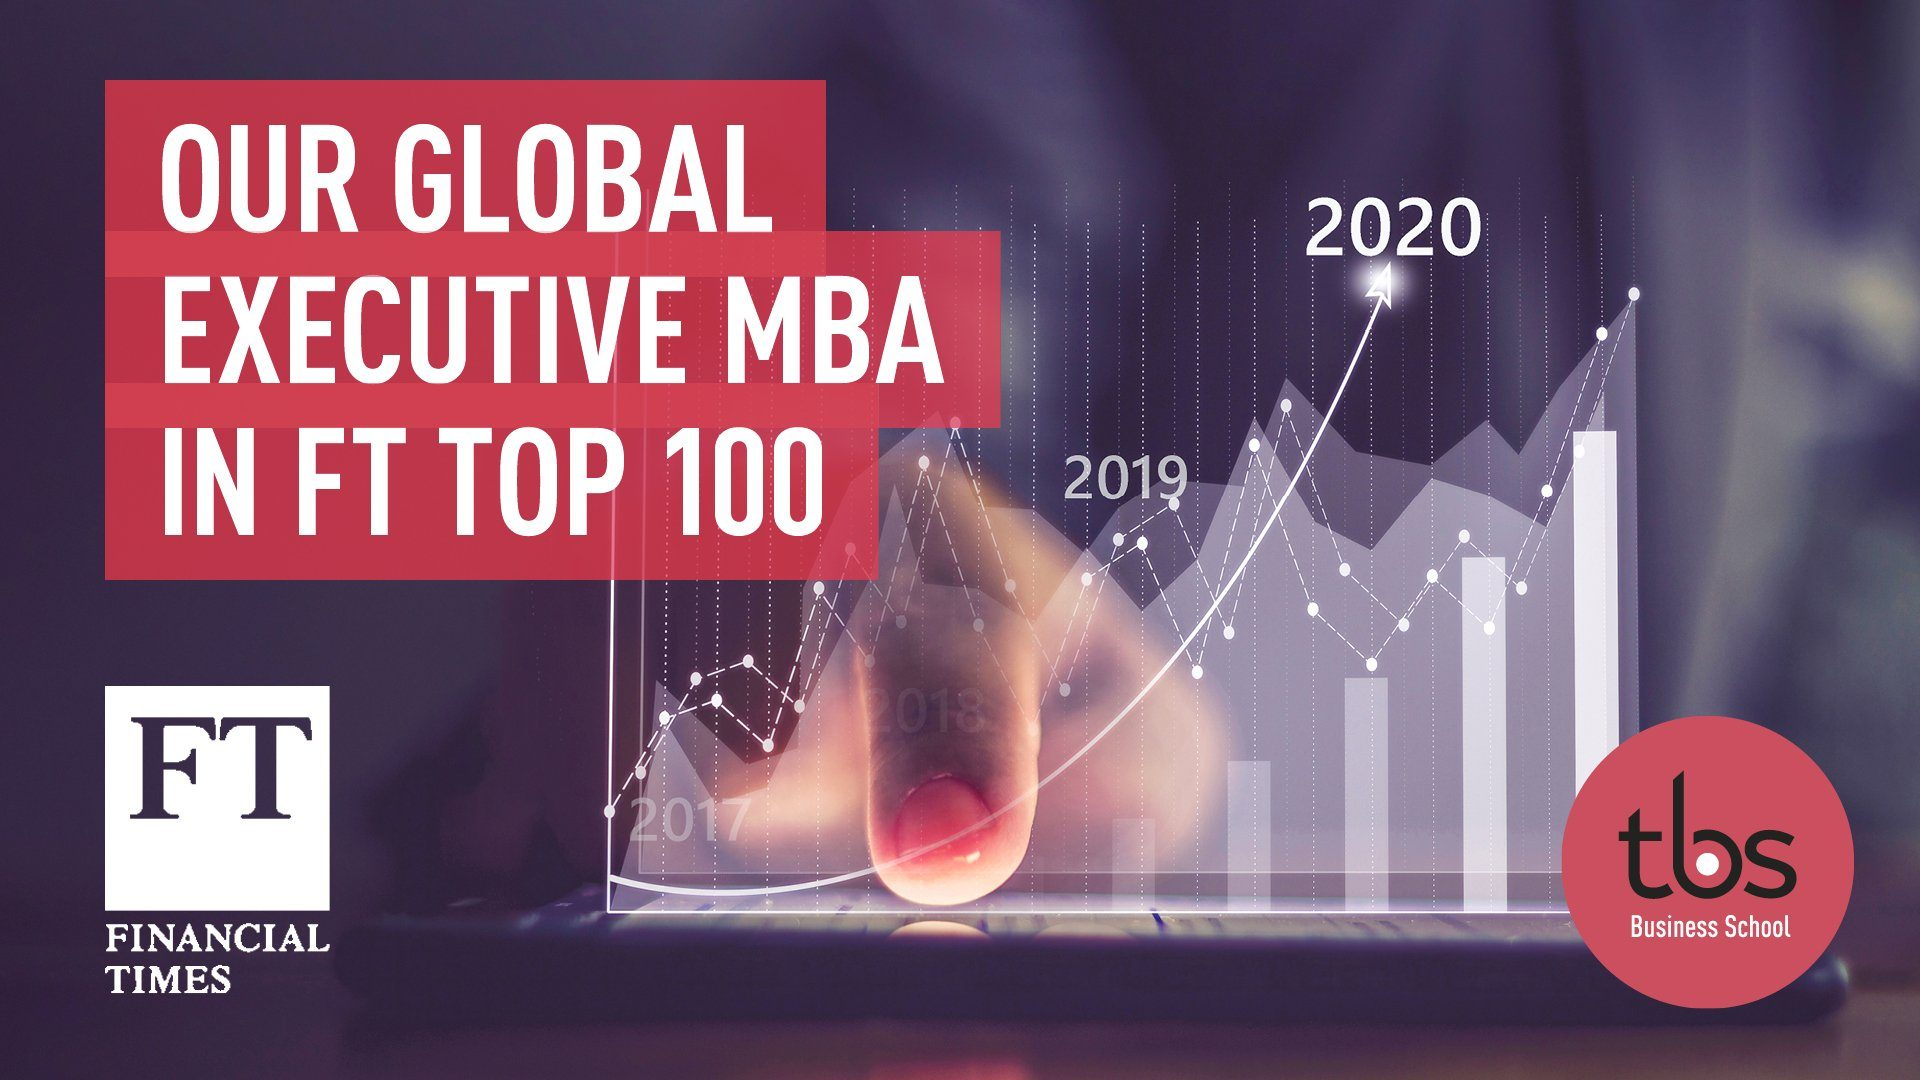 Post Classement Ft Global Executive Mba 1920 X 1080px